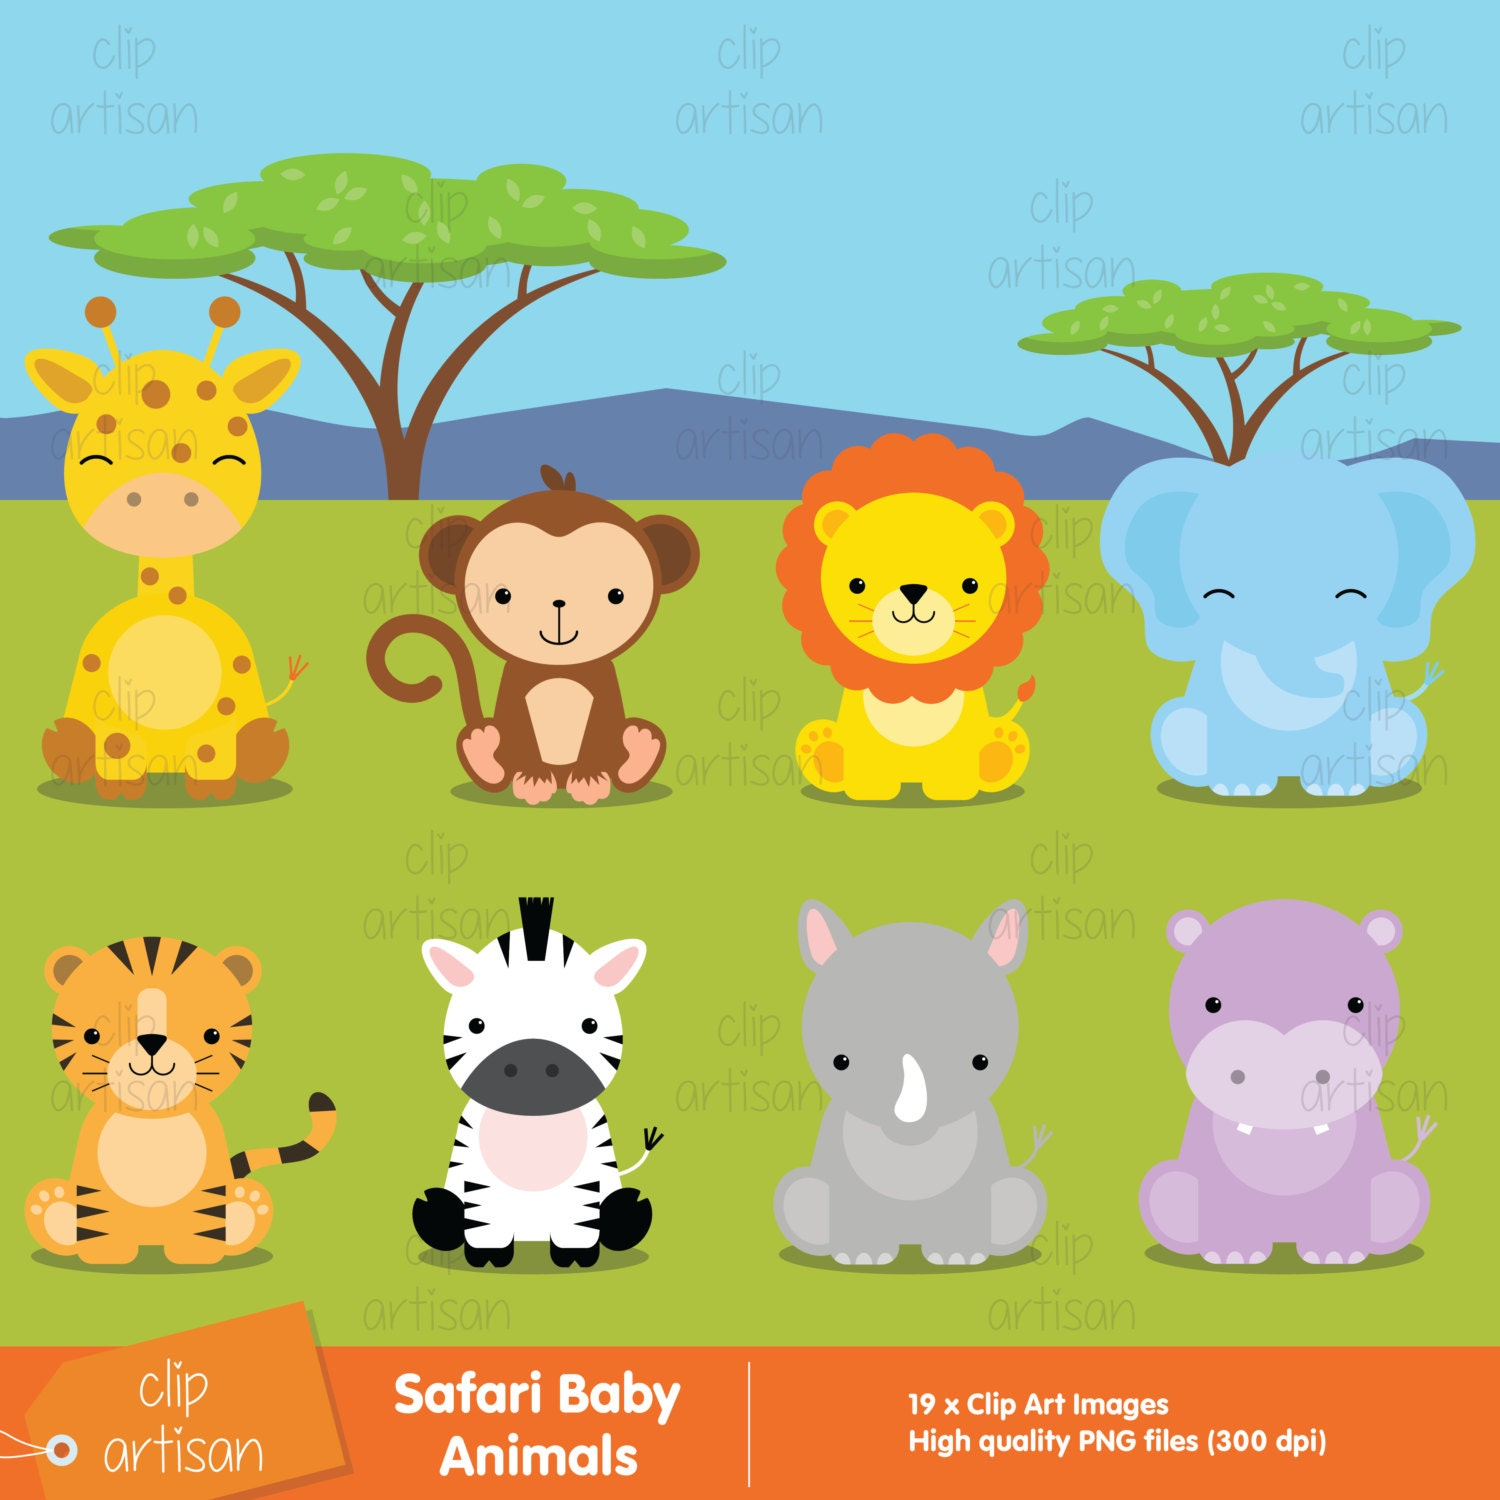 safari baby animals clipart jungle animals by clipartisan. Black Bedroom Furniture Sets. Home Design Ideas